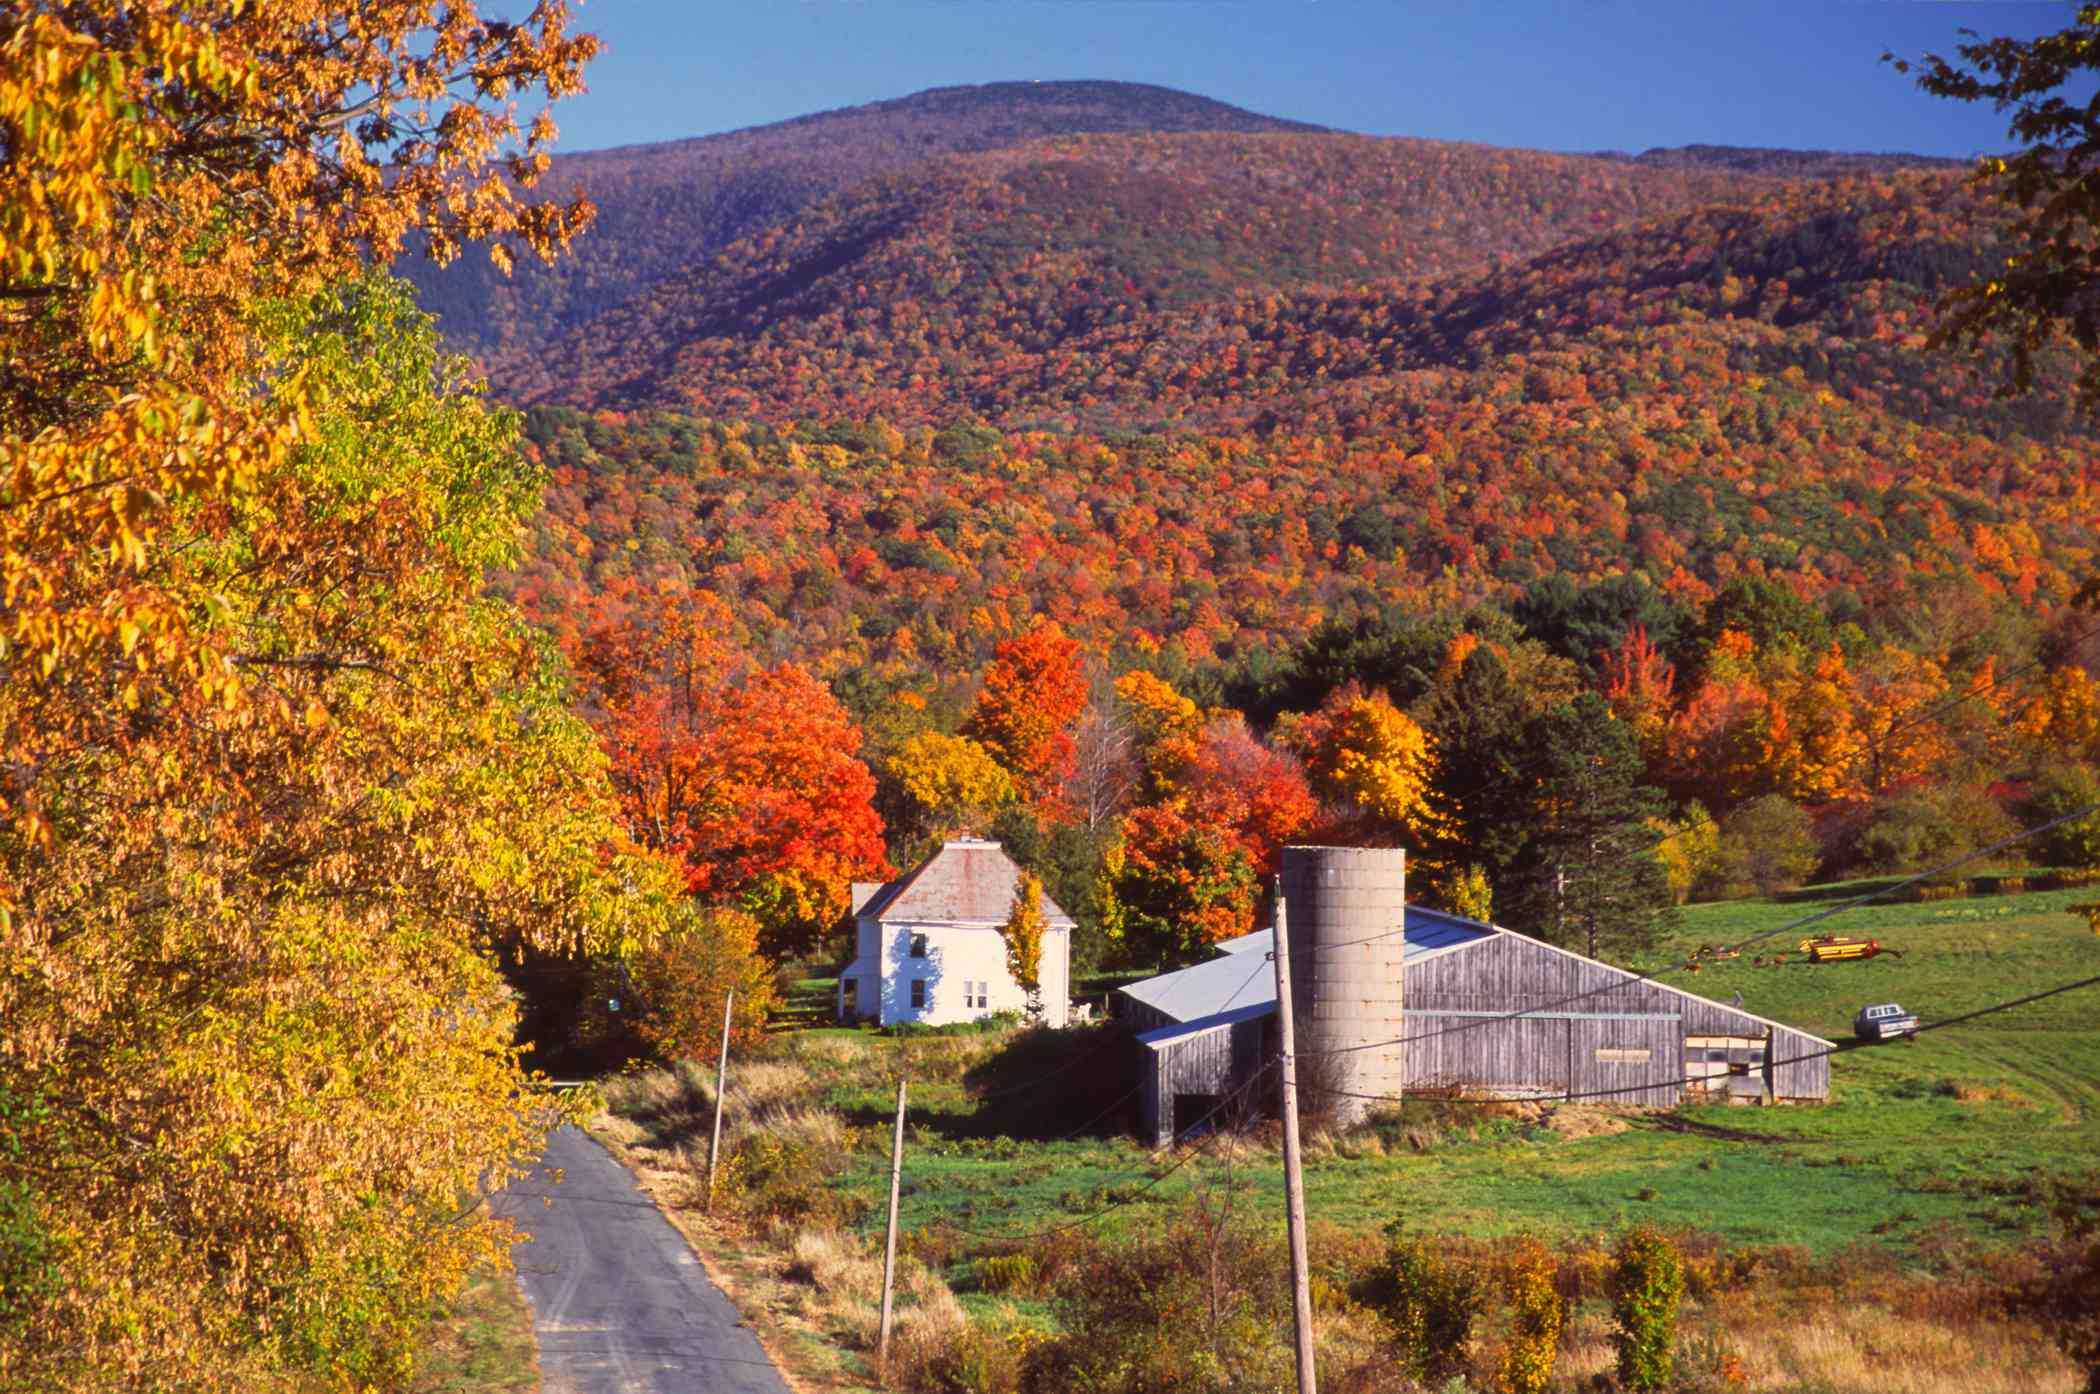 farmhouse with a mountain forest in the background with fall foliage